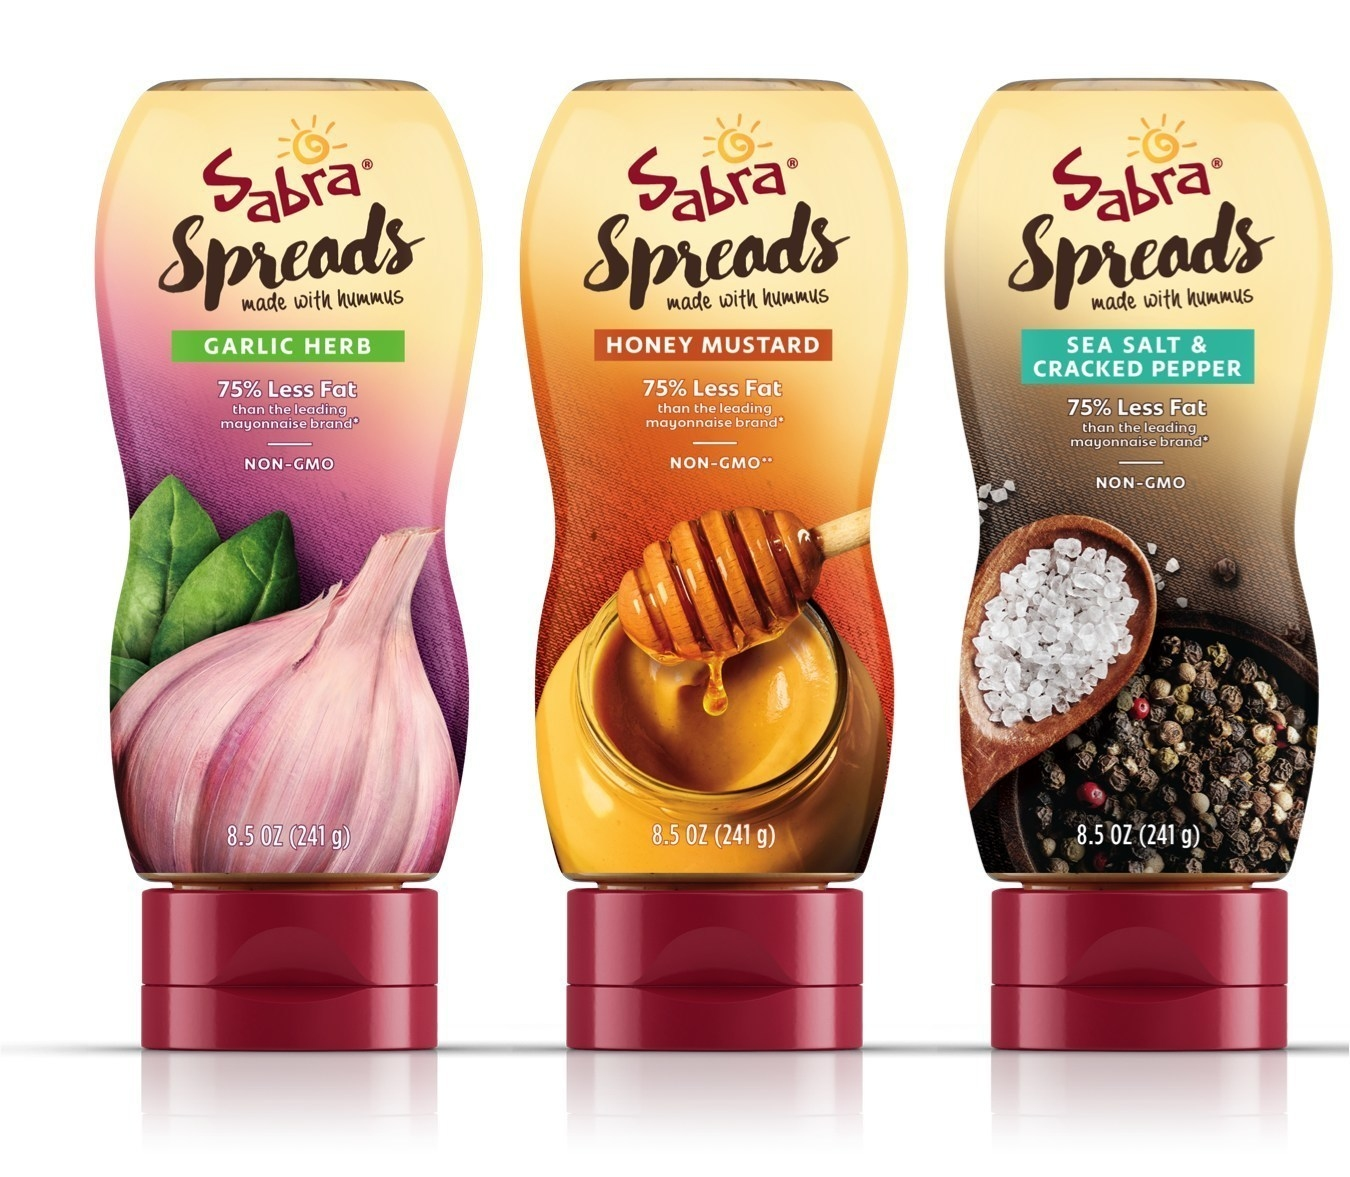 Sabra Sandwich Spreads